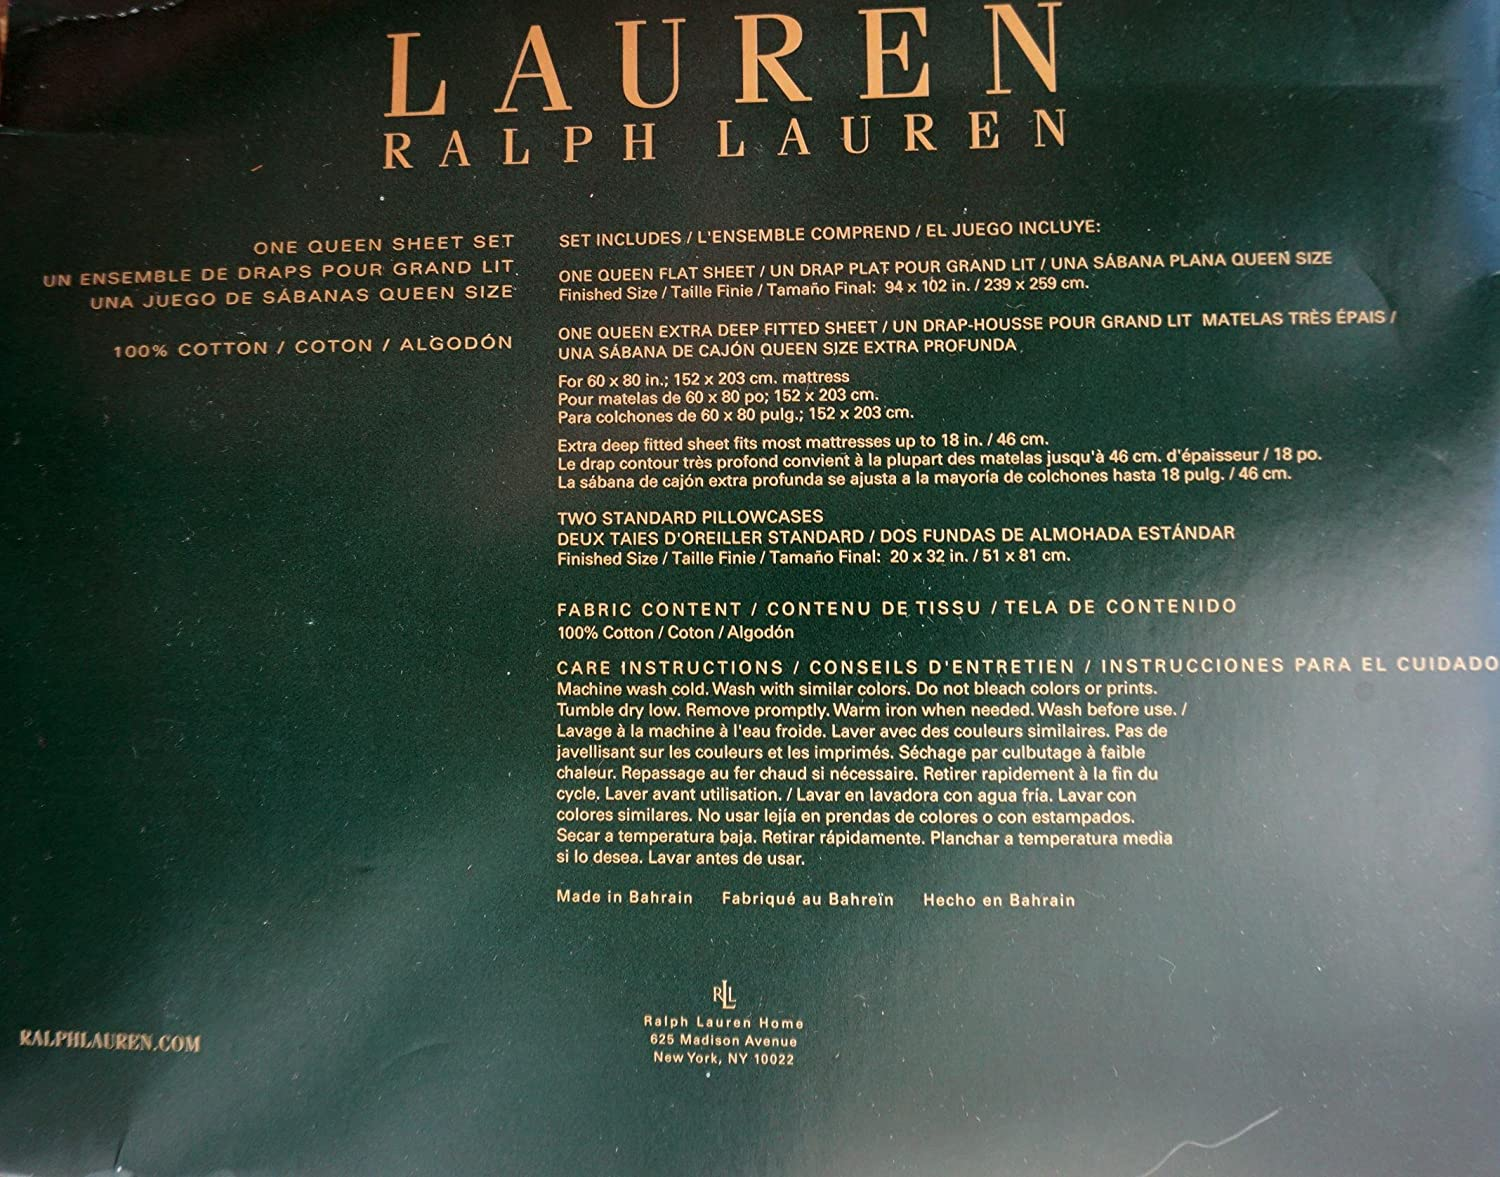 Amazon.com: Lauren Ralph Lauren 4 Piece Cotton Queen Size Sheet Set Leopard Cheetah Print: Home & Kitchen